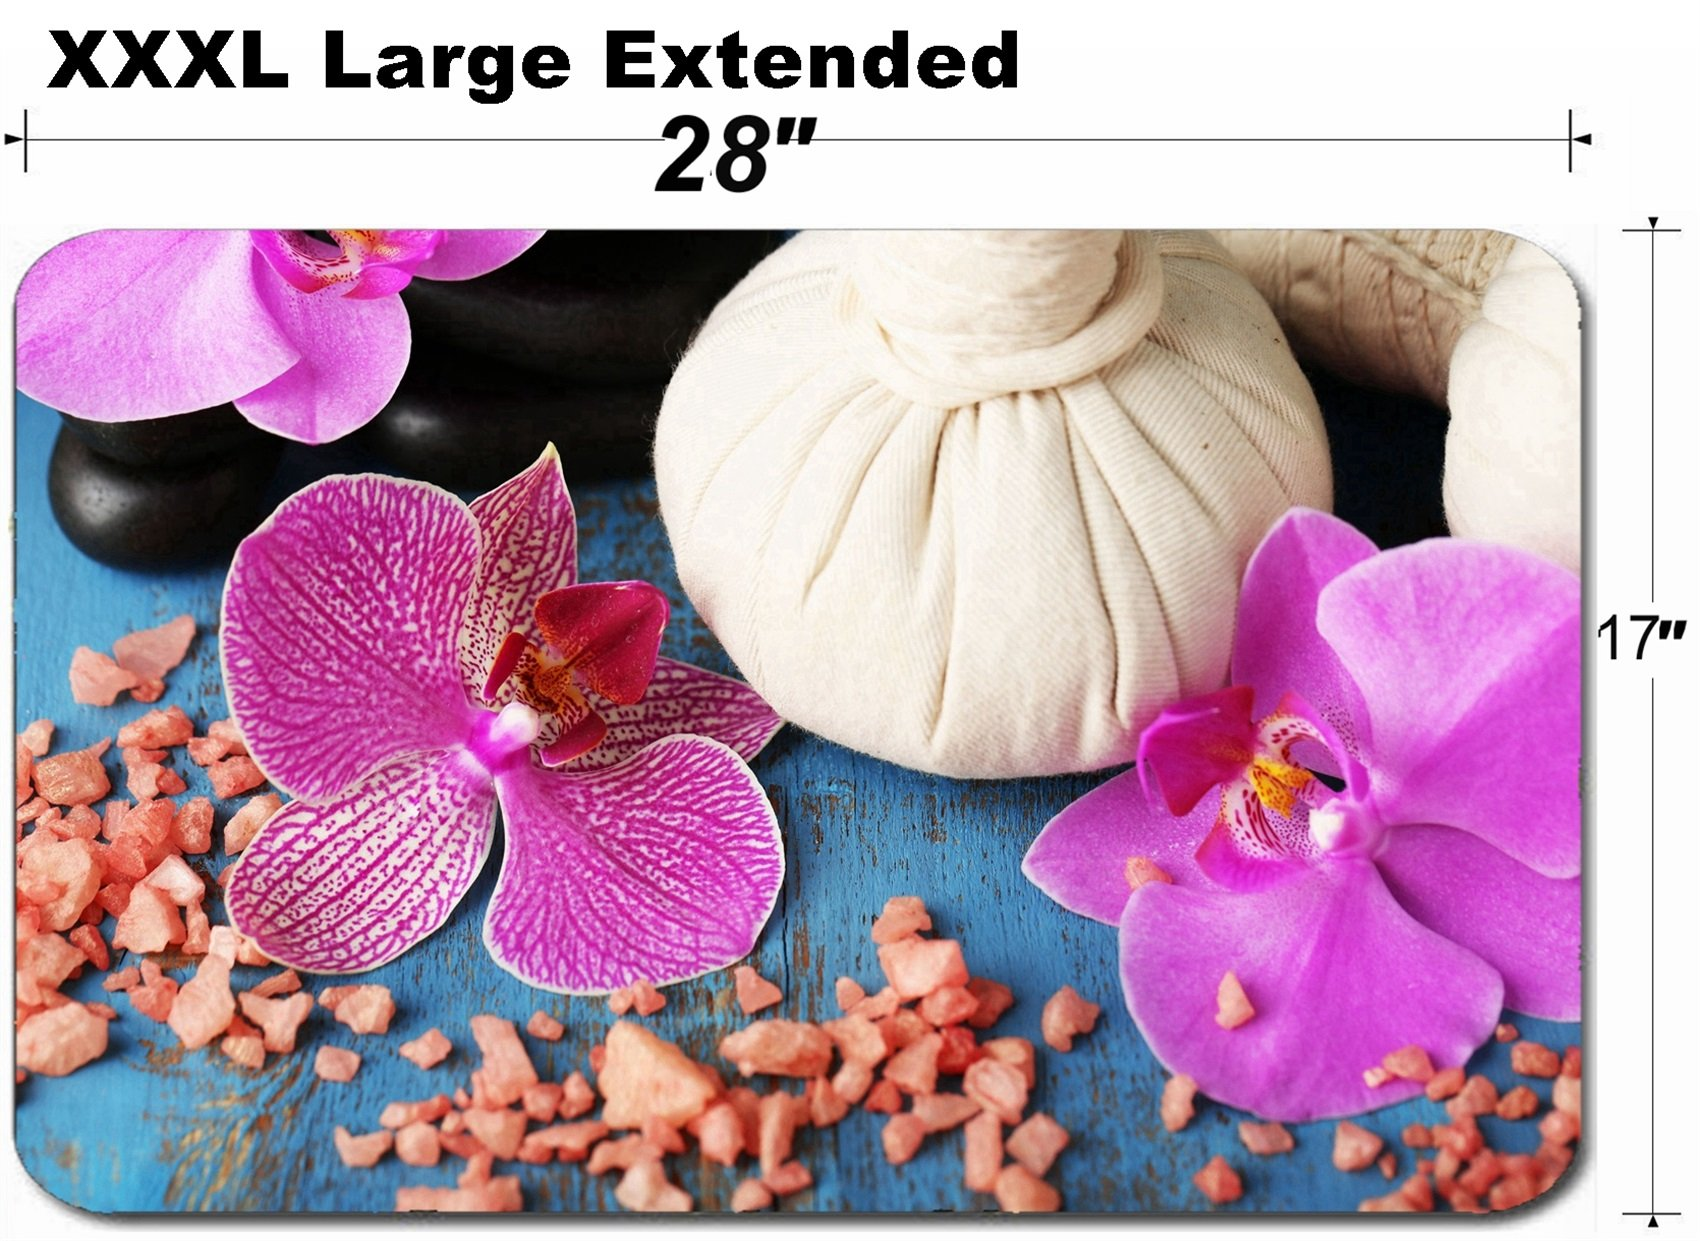 MSD Large Table Mat Non-Slip Natural Rubber Desk Pads Image ID: 35139945 Colorful Tropical Orchid Flowers and Spa Set on Color Wooden backgro